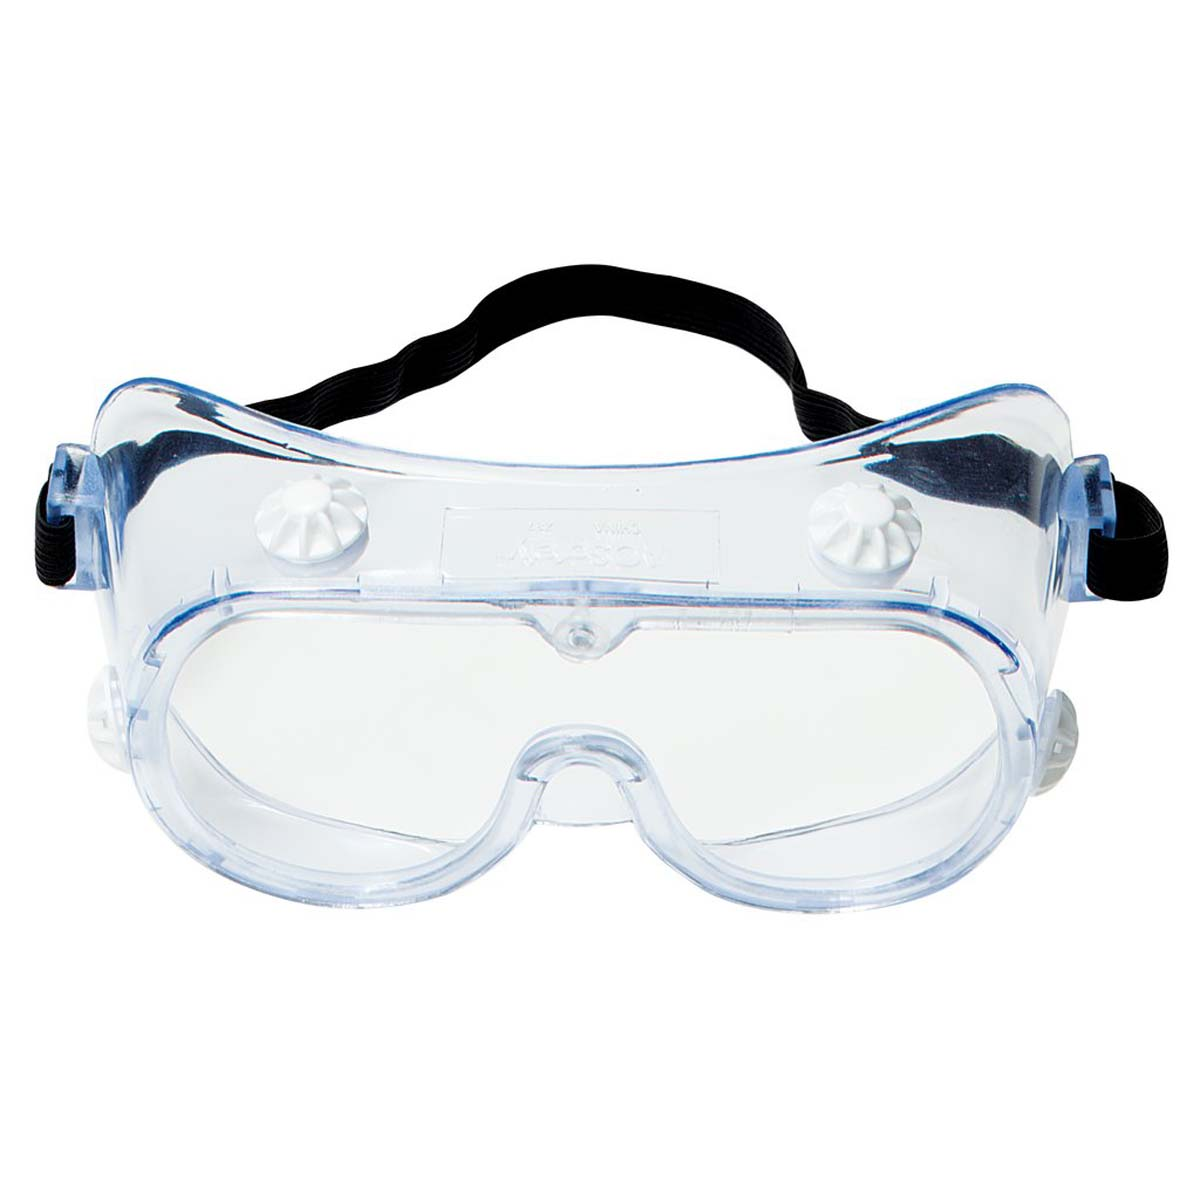 "3Mâ""¢ 334 Splash Safety Goggles 40660-00000-10, Clear Lens,"